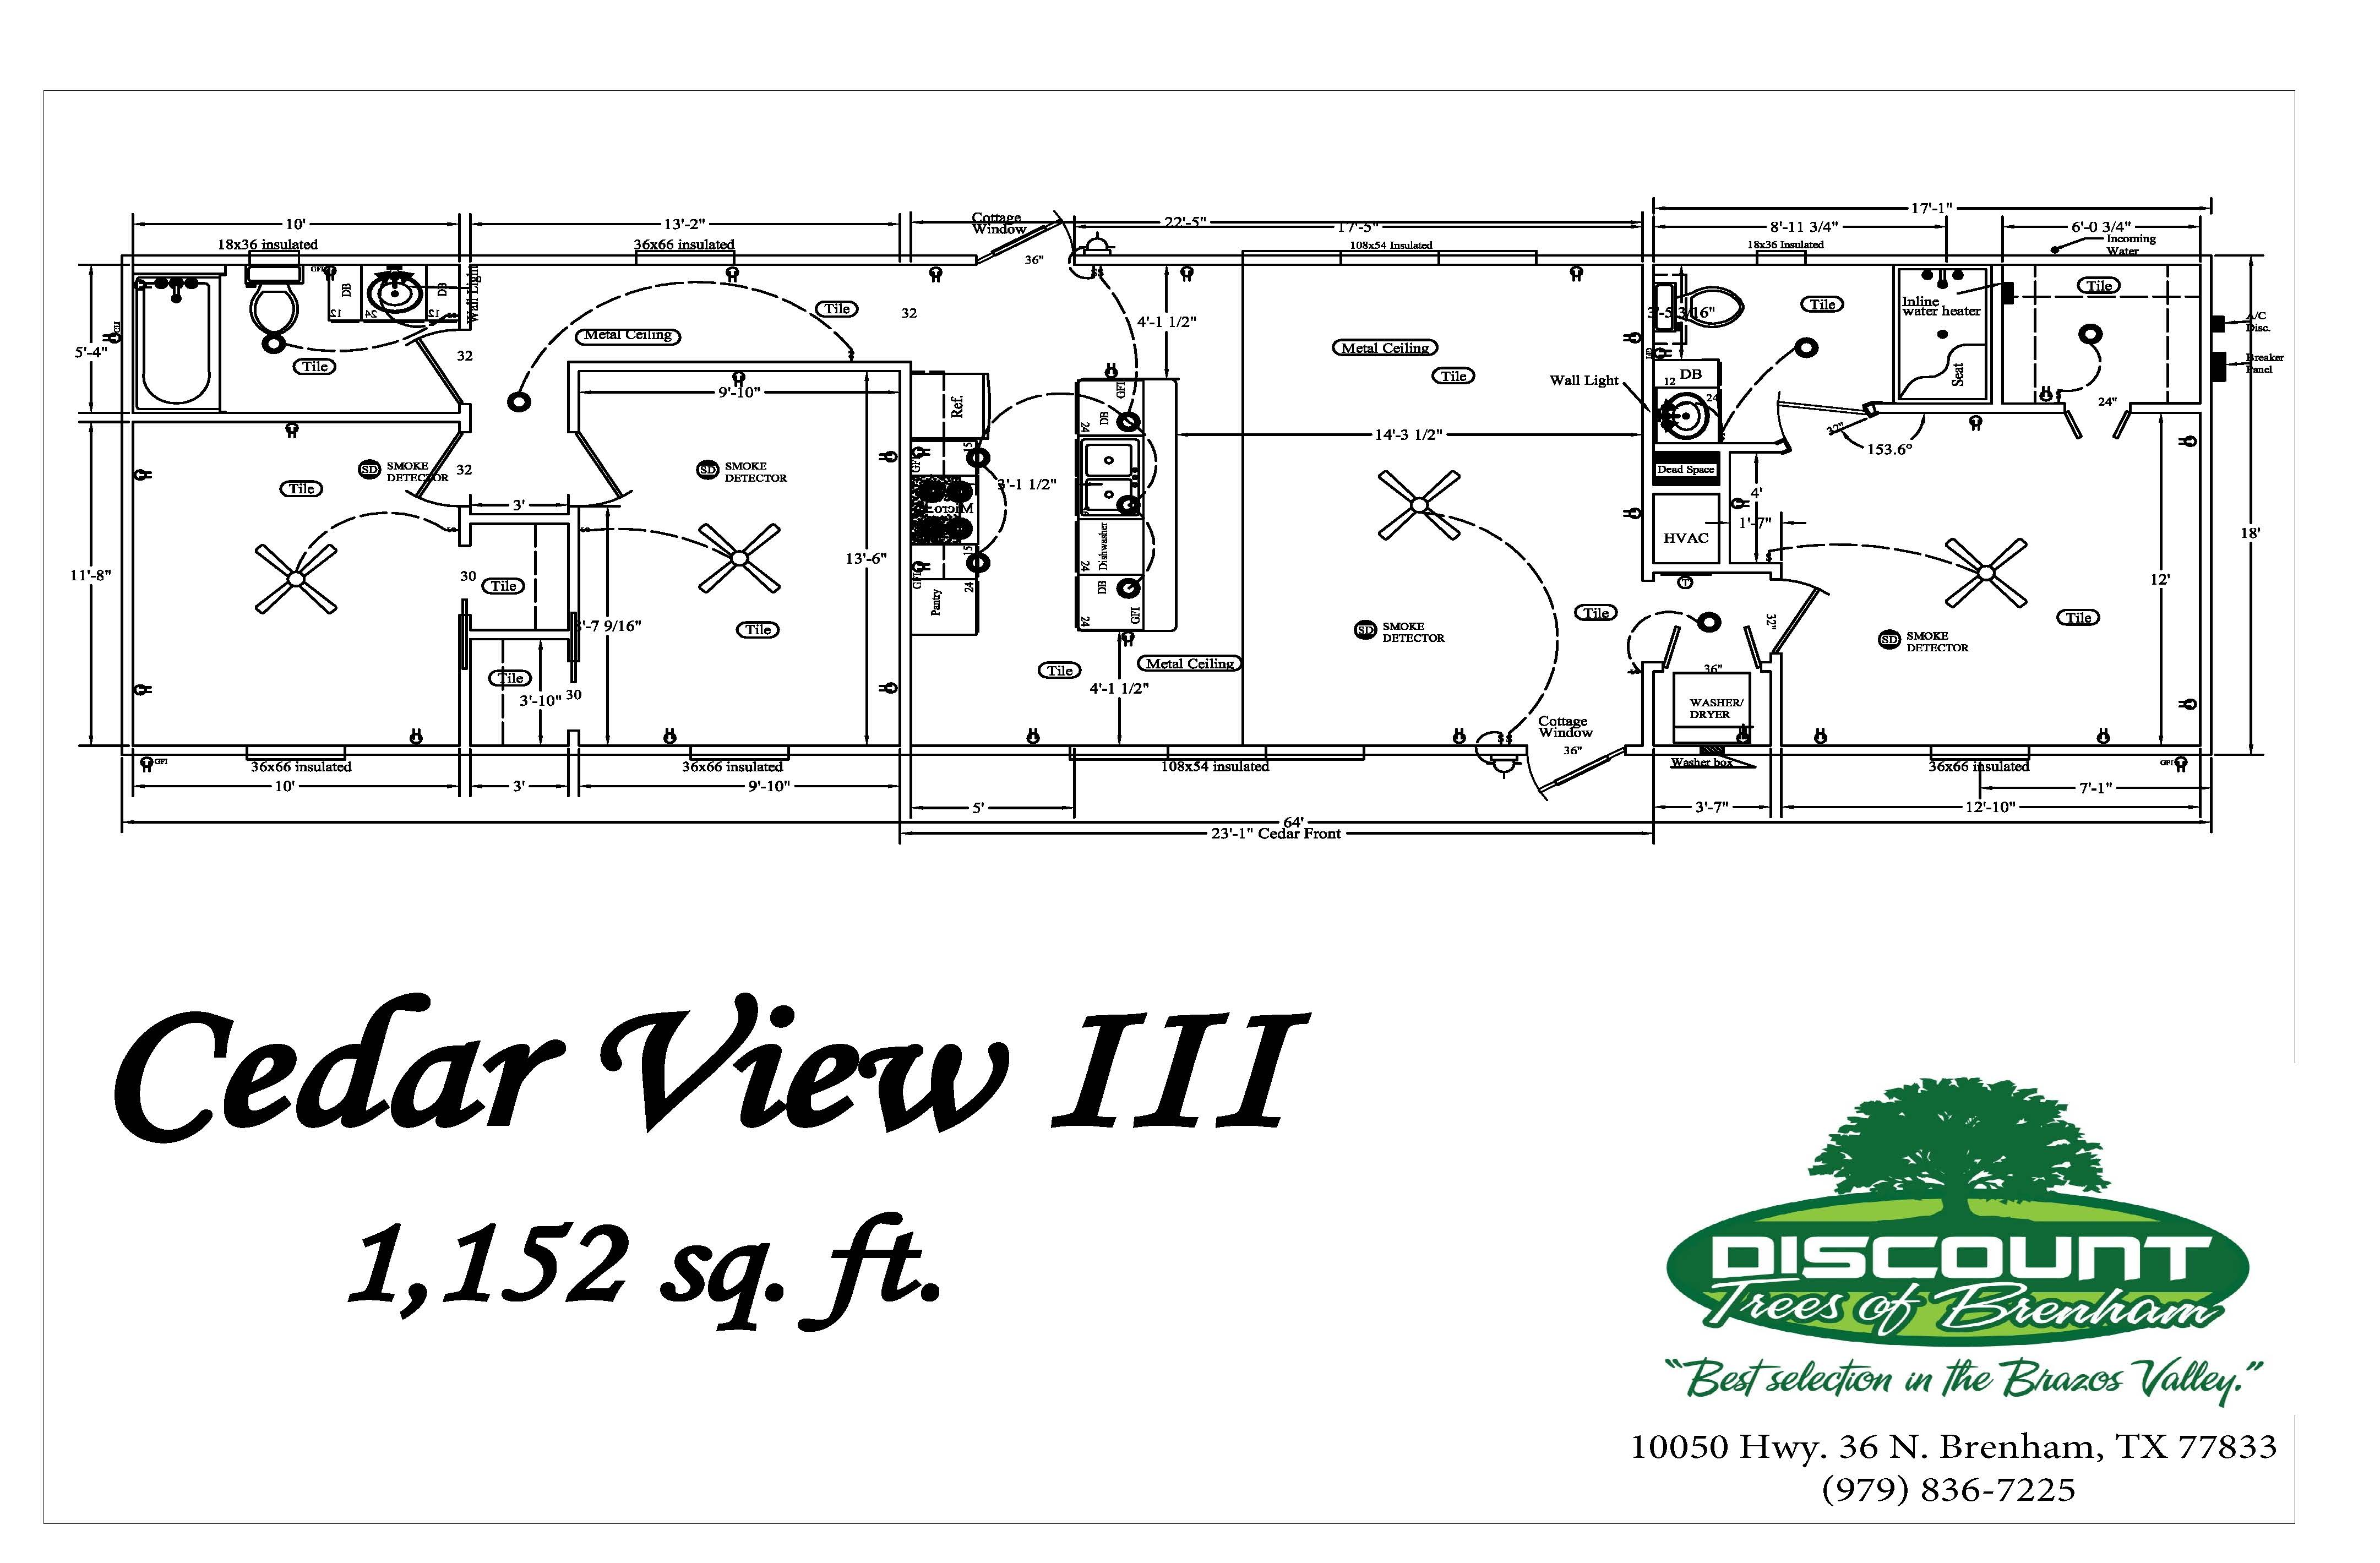 Cedar_View_III_Floorplan.jpg